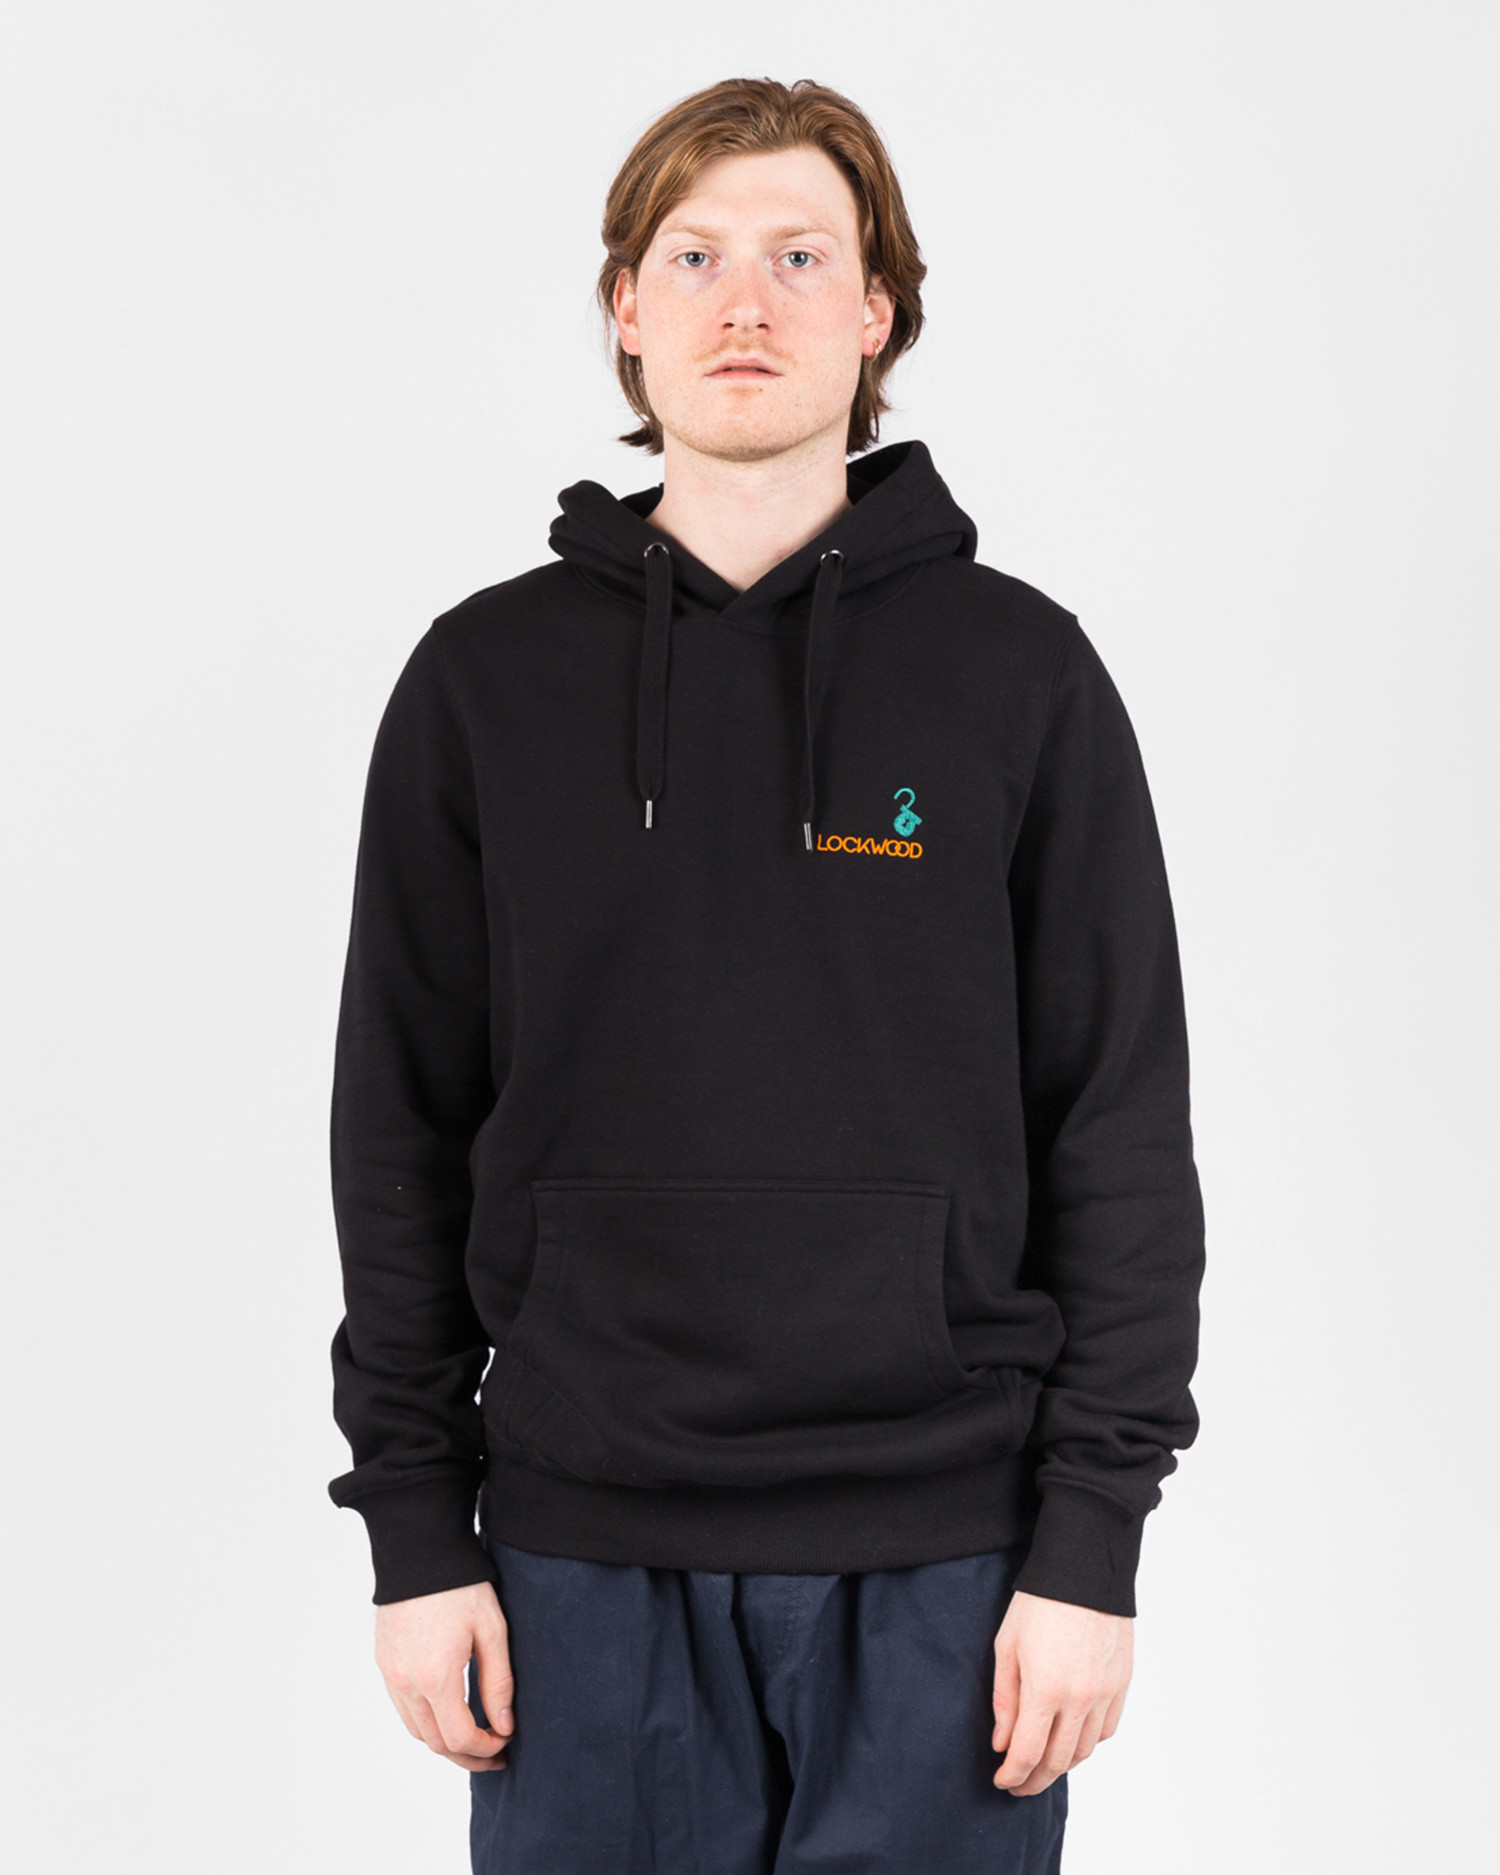 Lockwood Embroidery Hoody Black